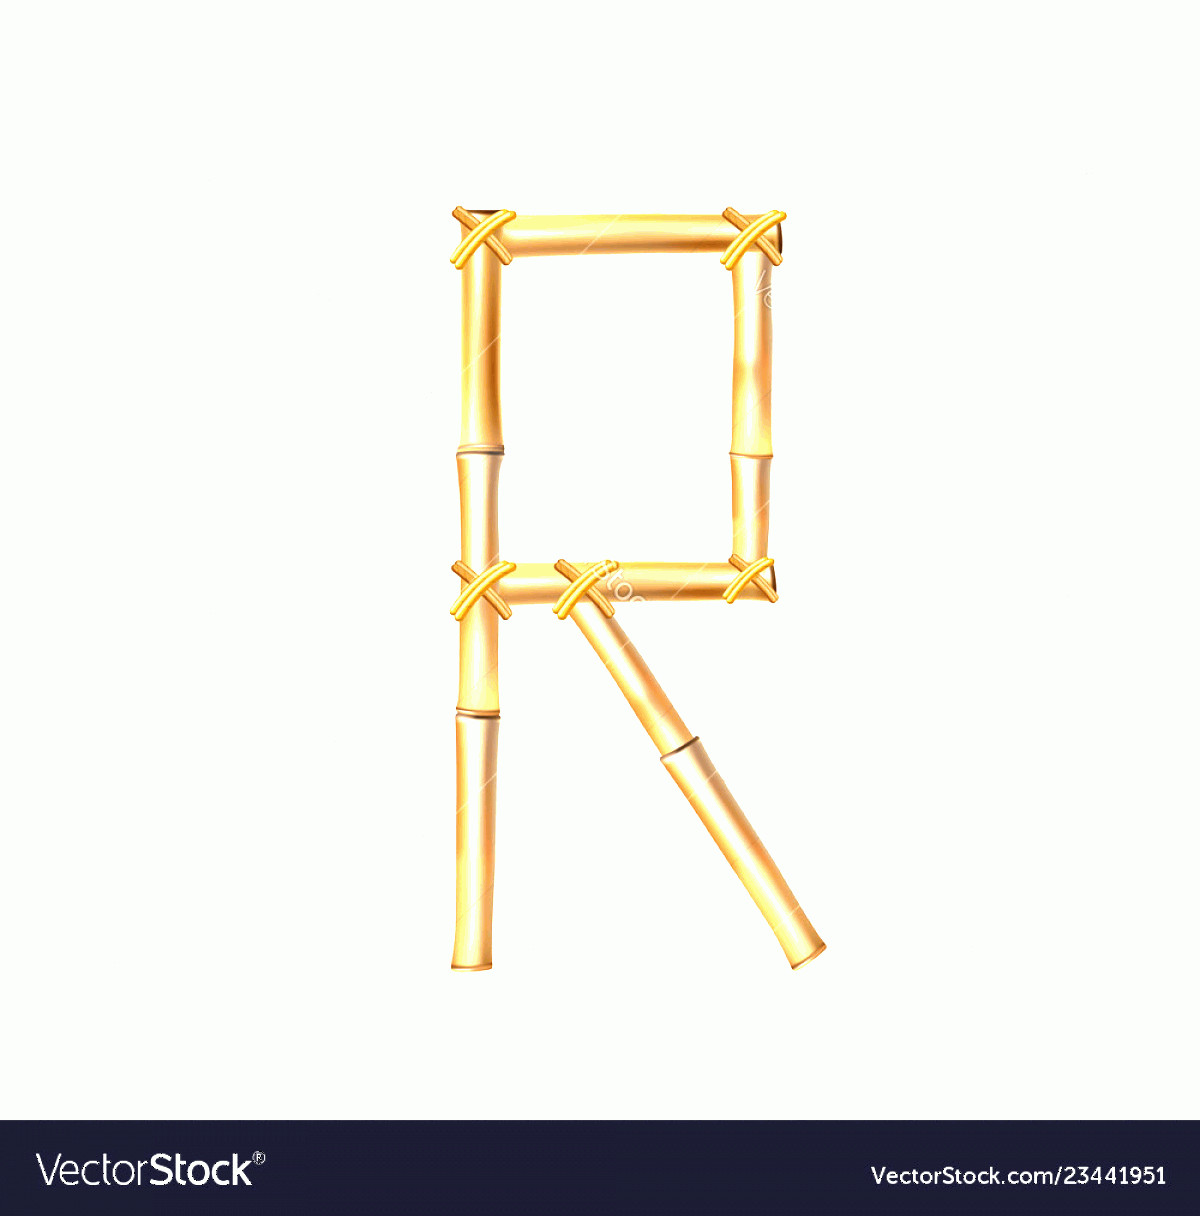 R Transparent Background Vector: Bamboo Letter R Isolated On Transparent Background Vector